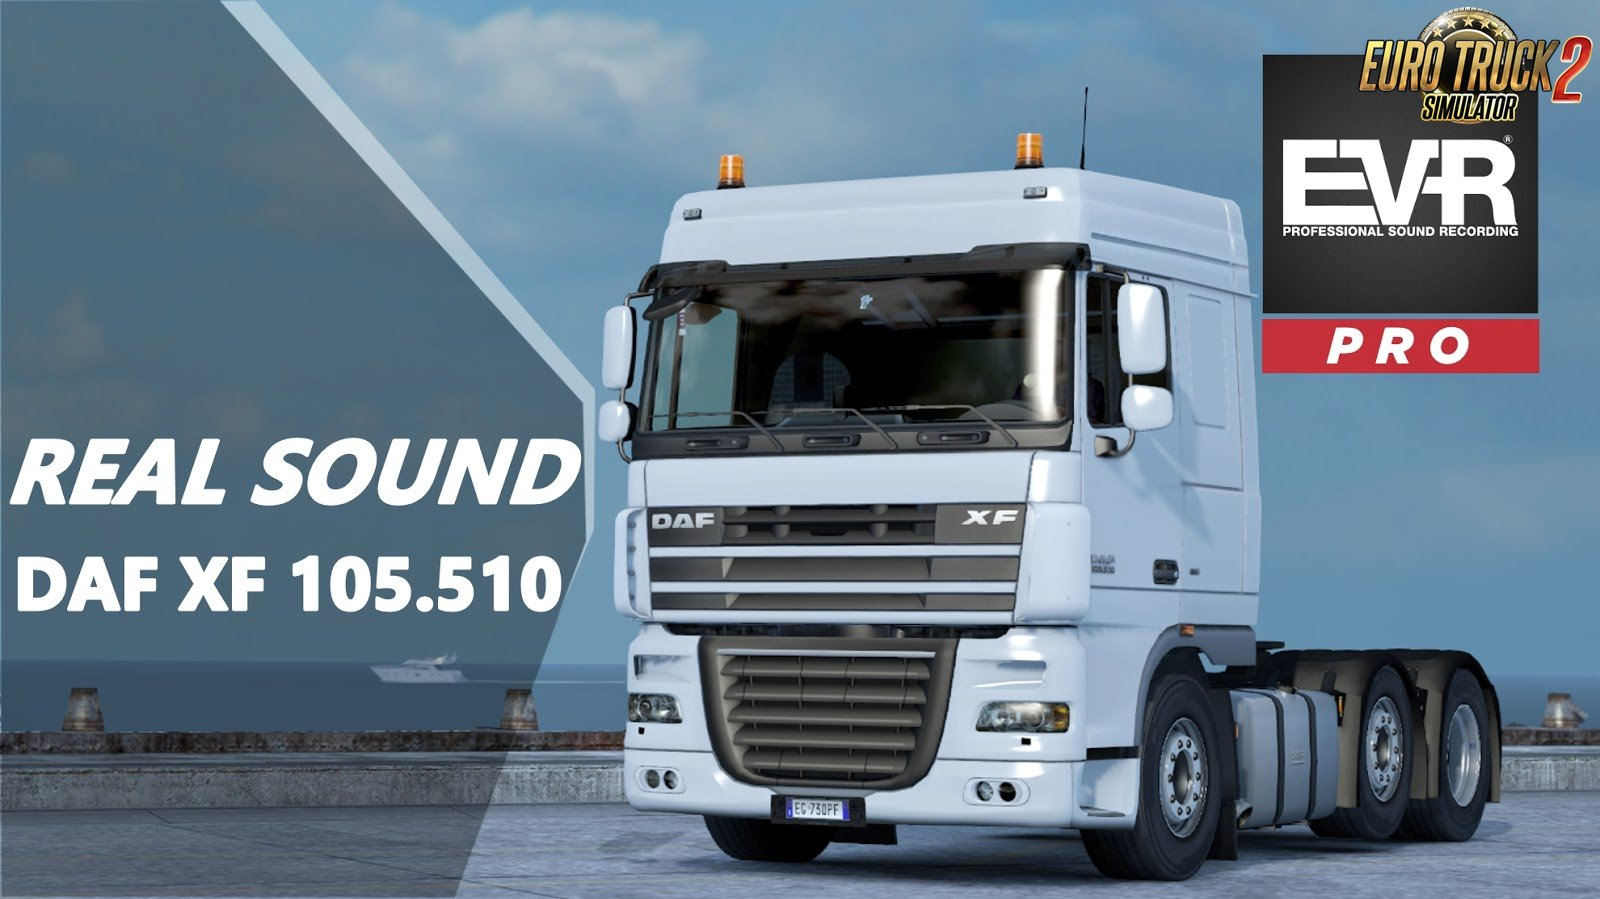 Real sound DAF XF 105.510 v1.5 Engine Voice Records